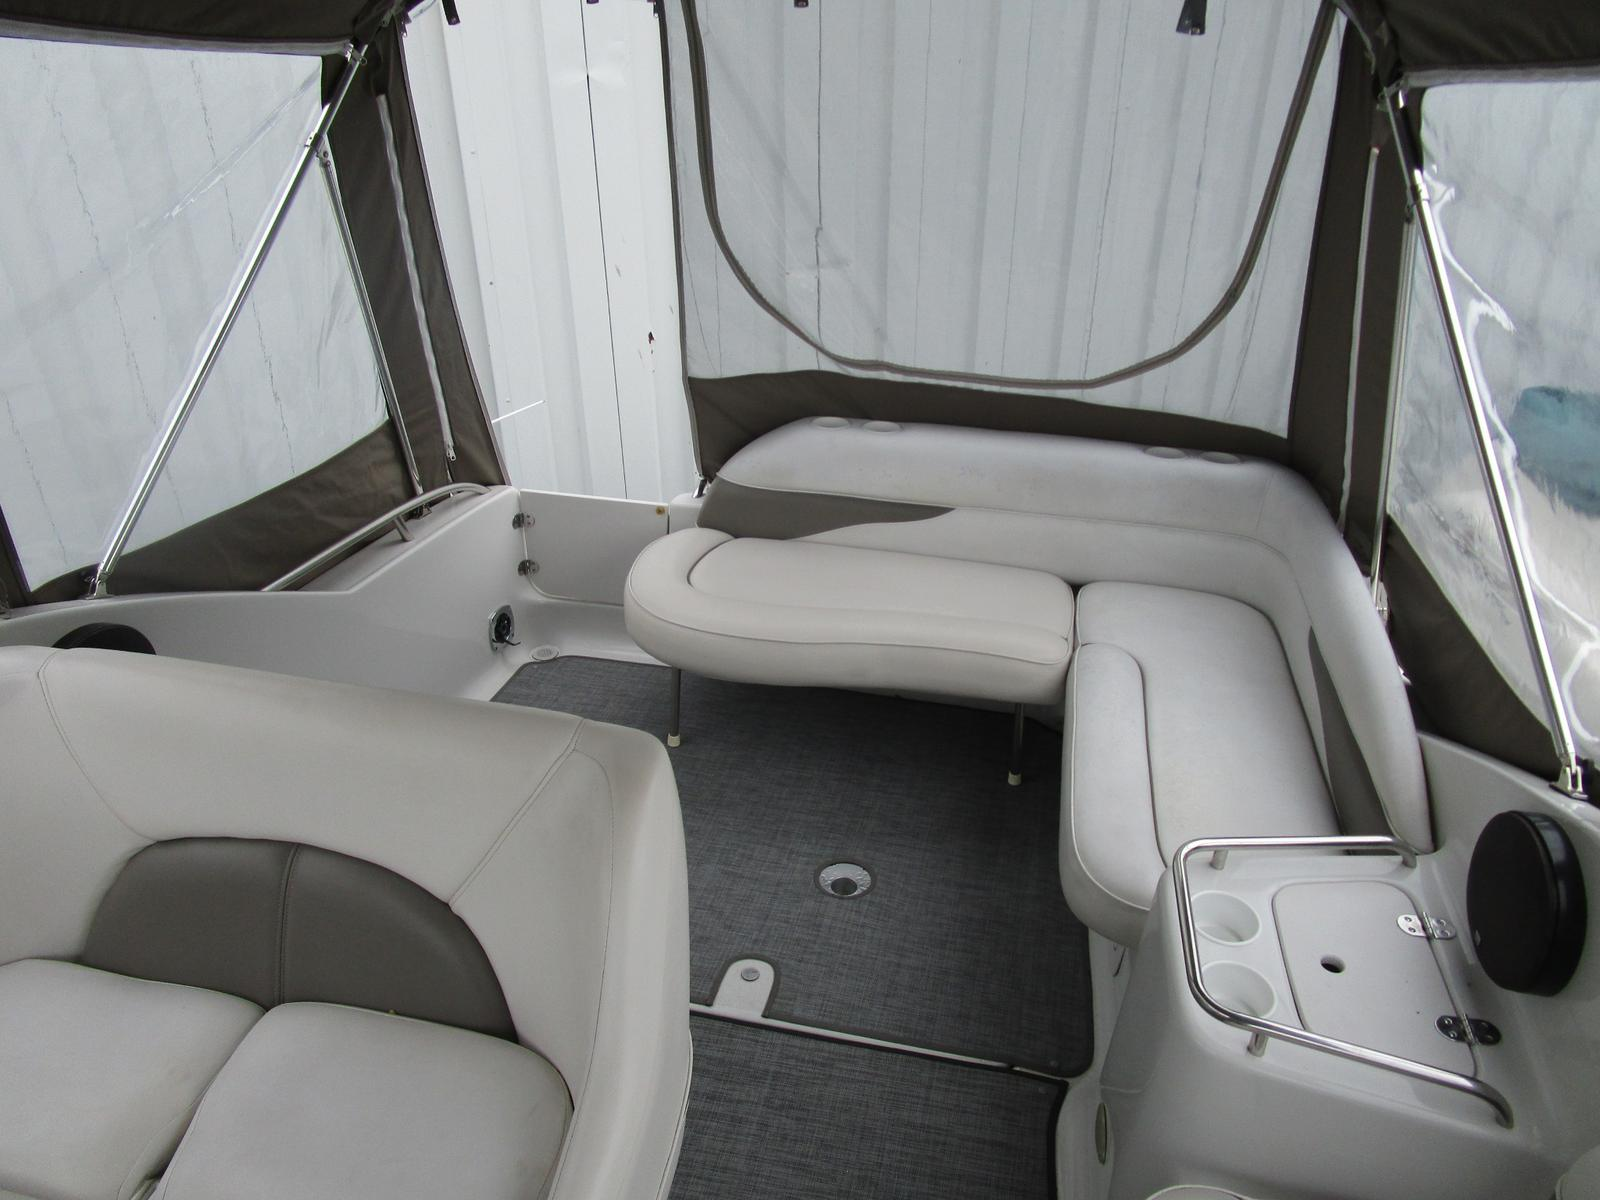 2003 Crownline boat for sale, model of the boat is 262 CR & Image # 5 of 11